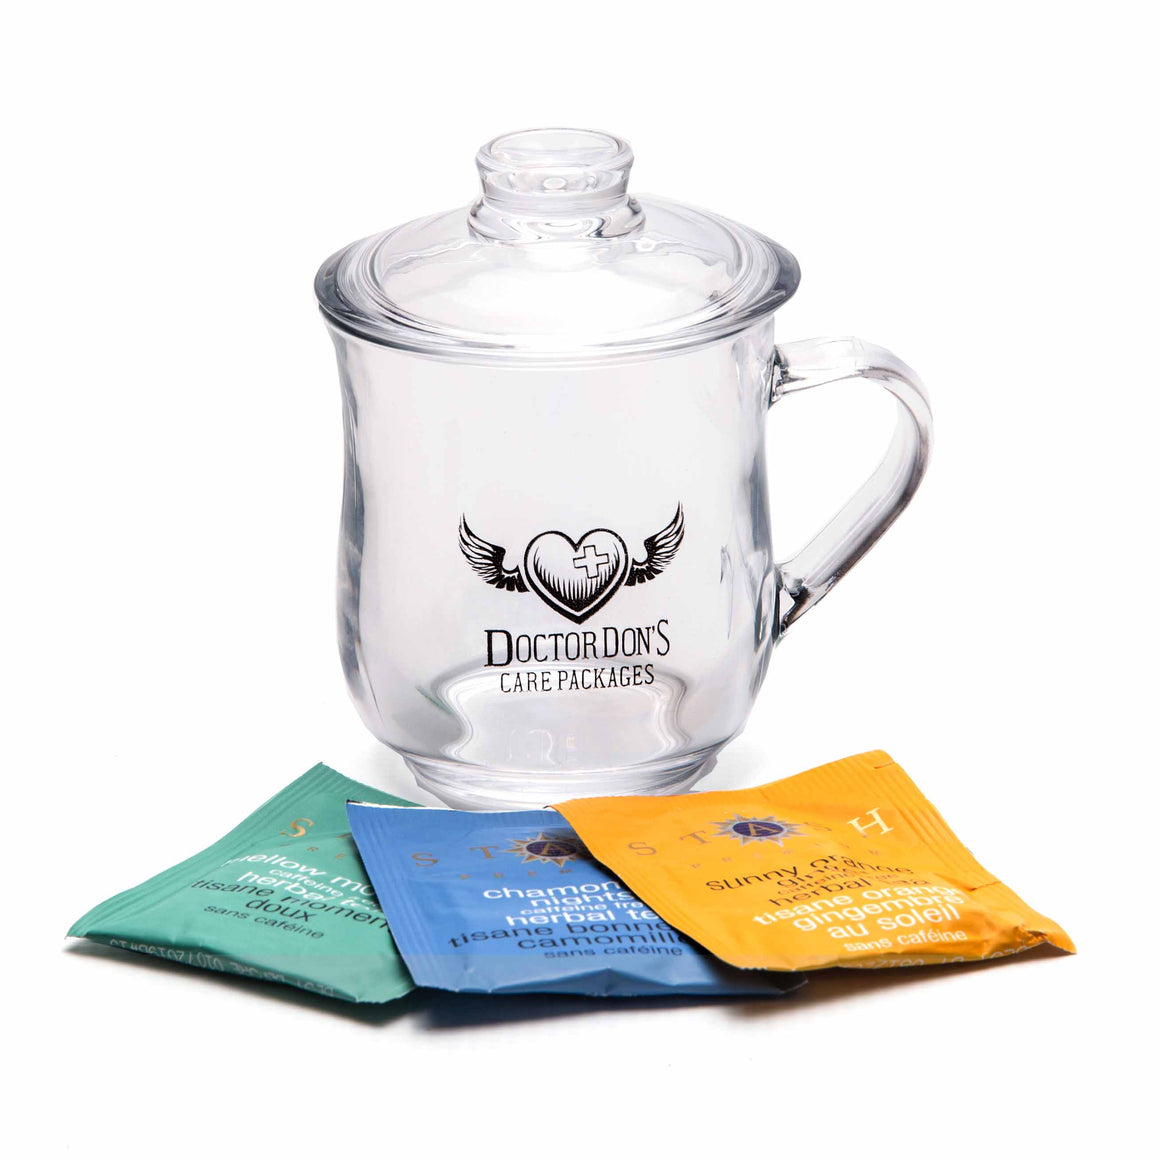 Classic Glass Tea Mug and Tea product image - included with Dr. Don's Care Packages Cancer Patient Care Package.